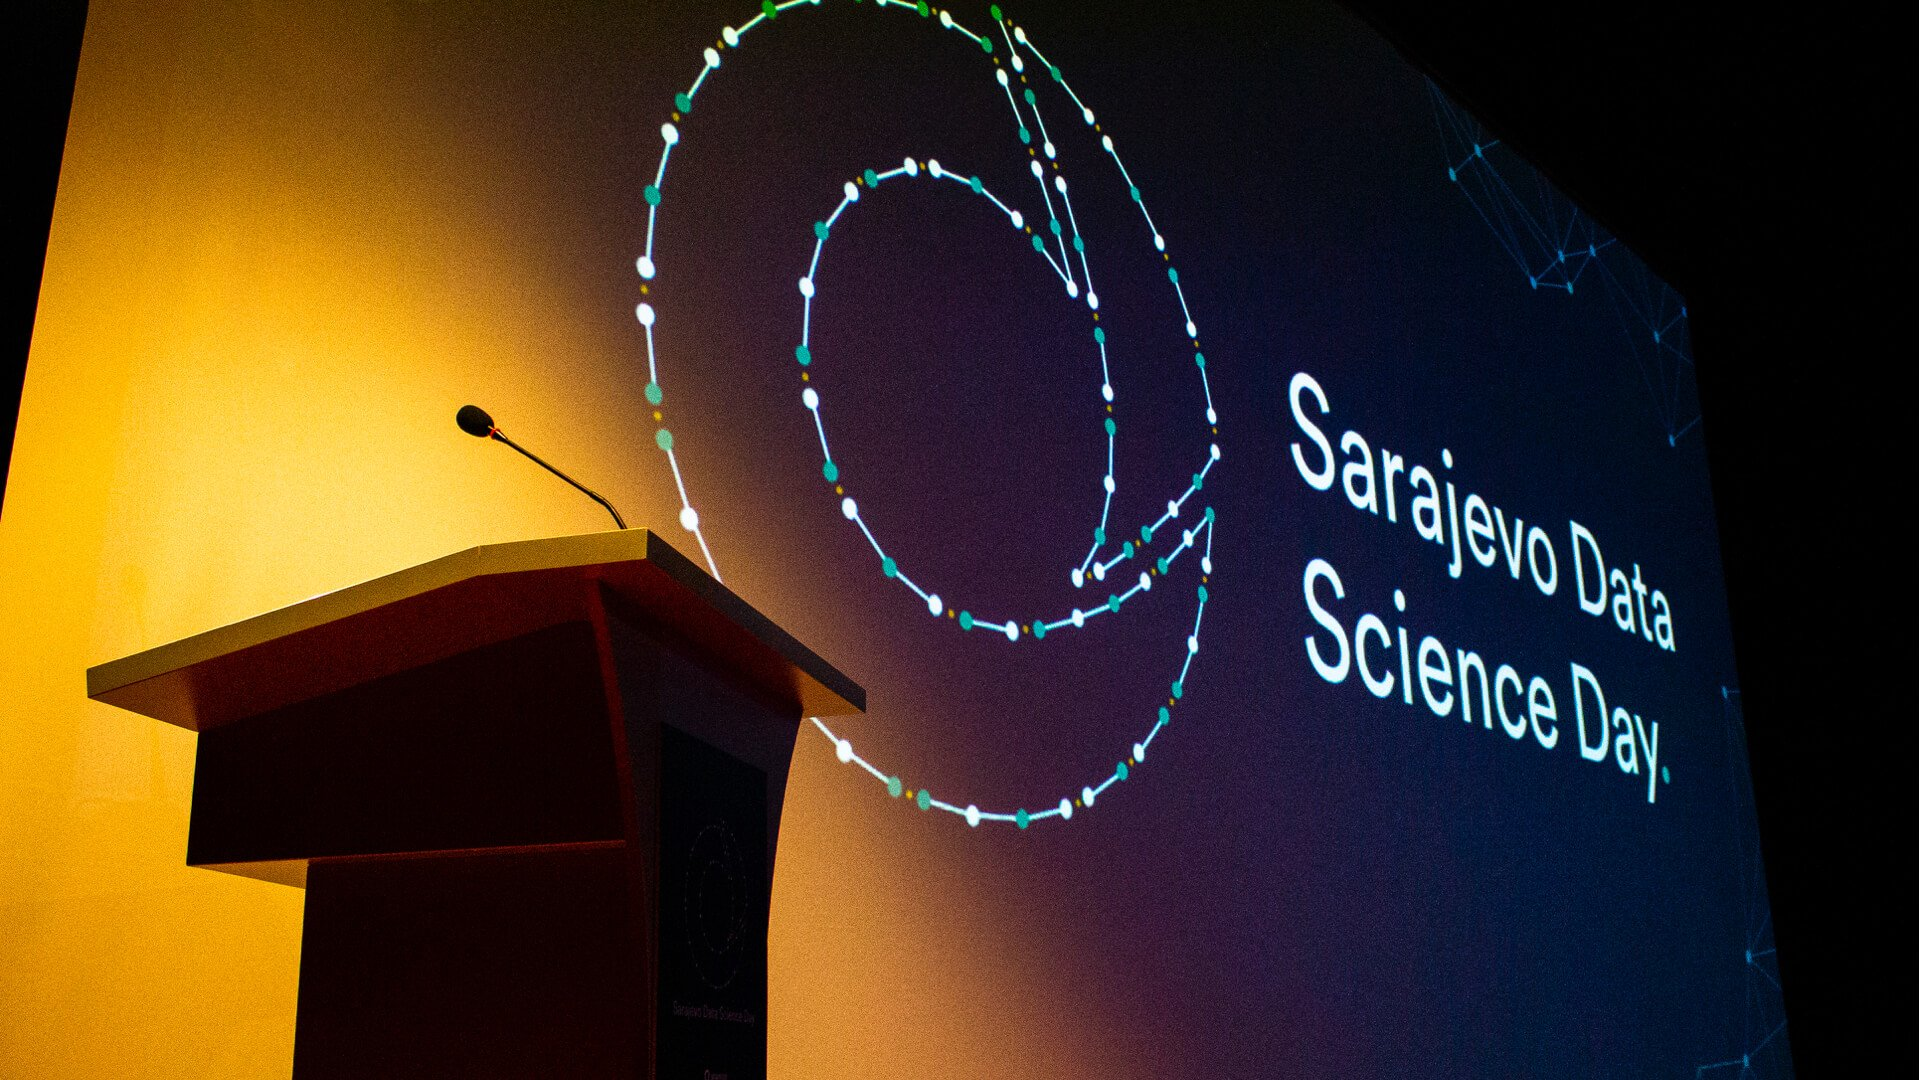 Sarajevo Data Science Day was a success